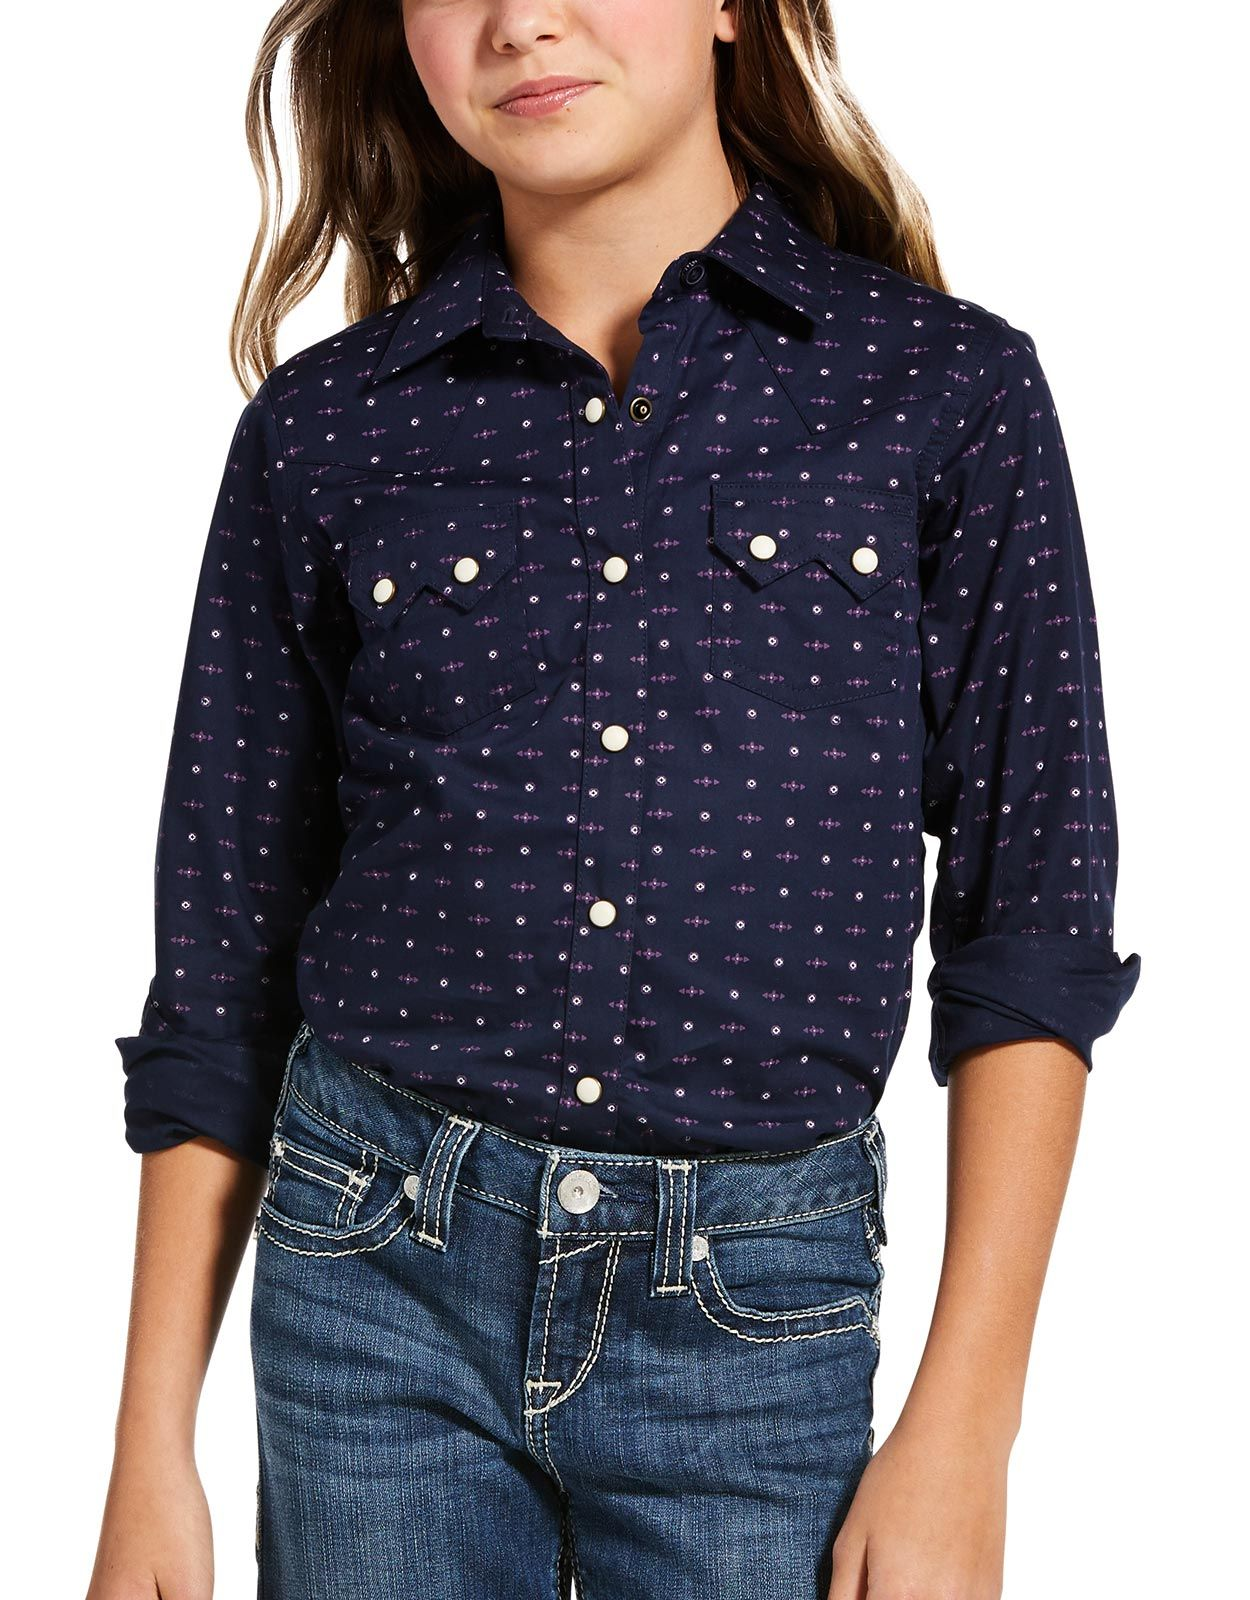 Ariat Girl's REAL Stretch Long Sleeve Print Snap Shirt - Navy Eclipse